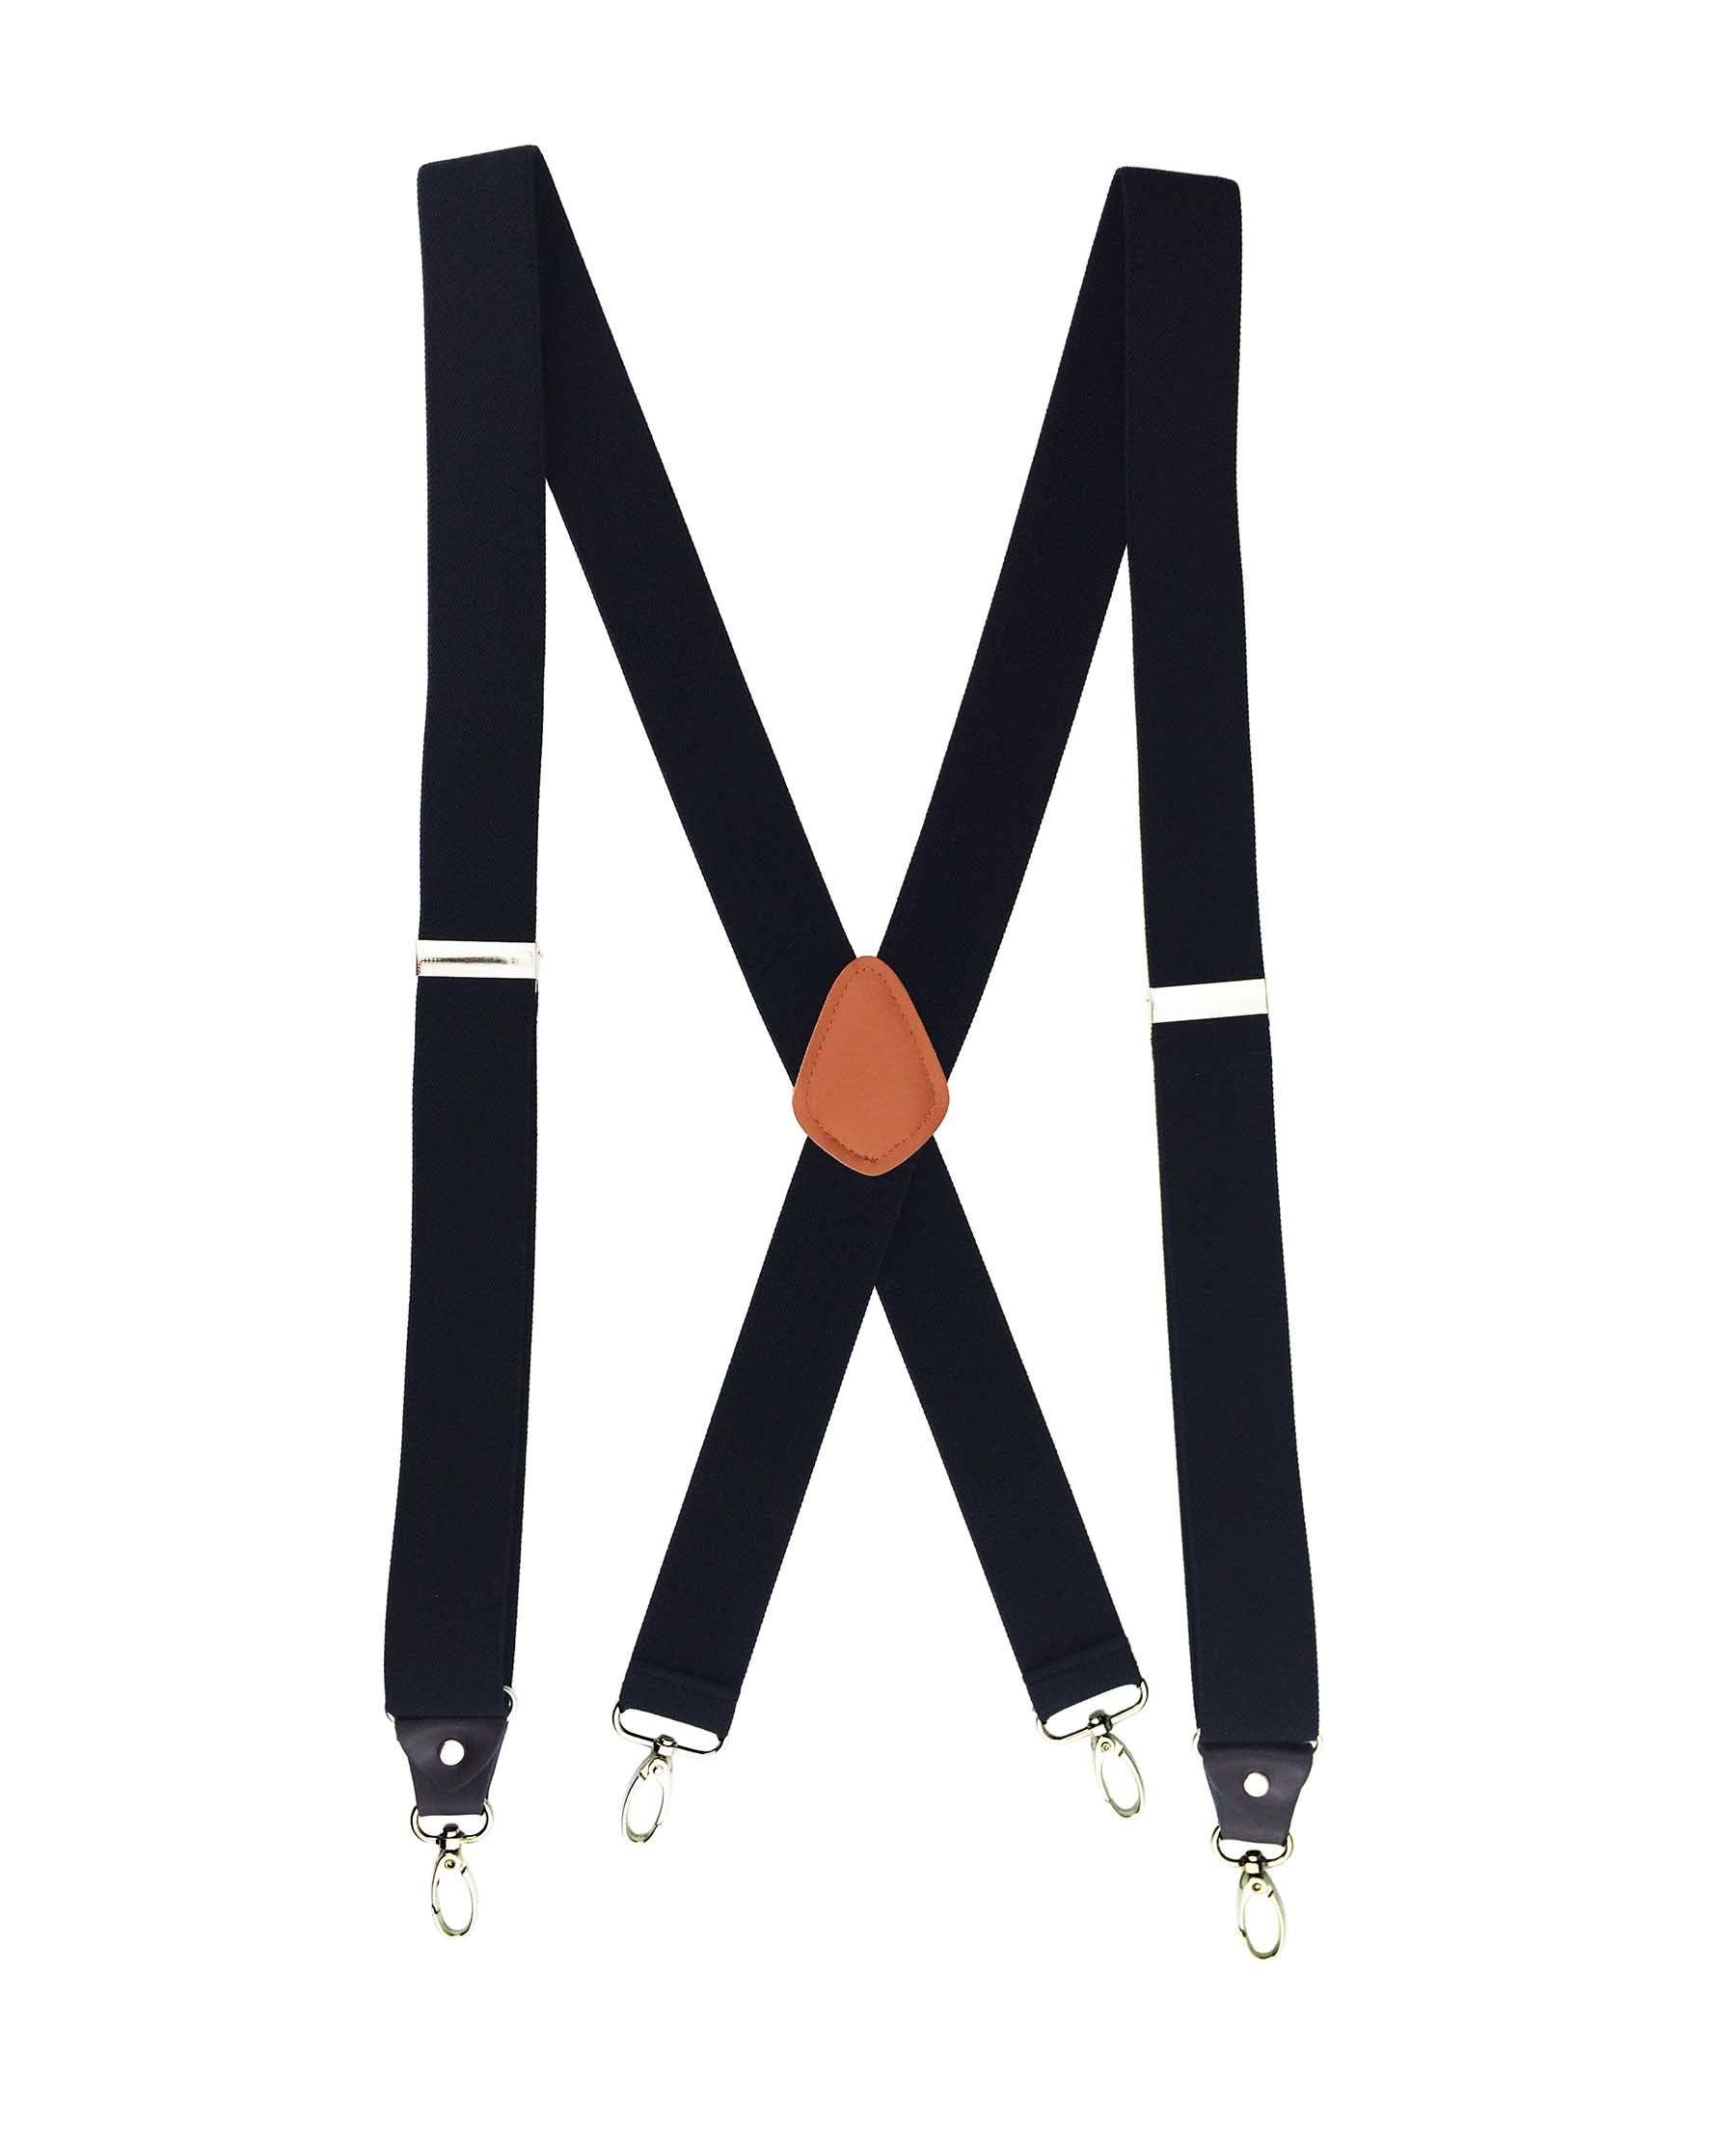 Romanlin Mens Suspenders Heavy Duty Big and Tall X Back 4 Hook Clips Black Size L